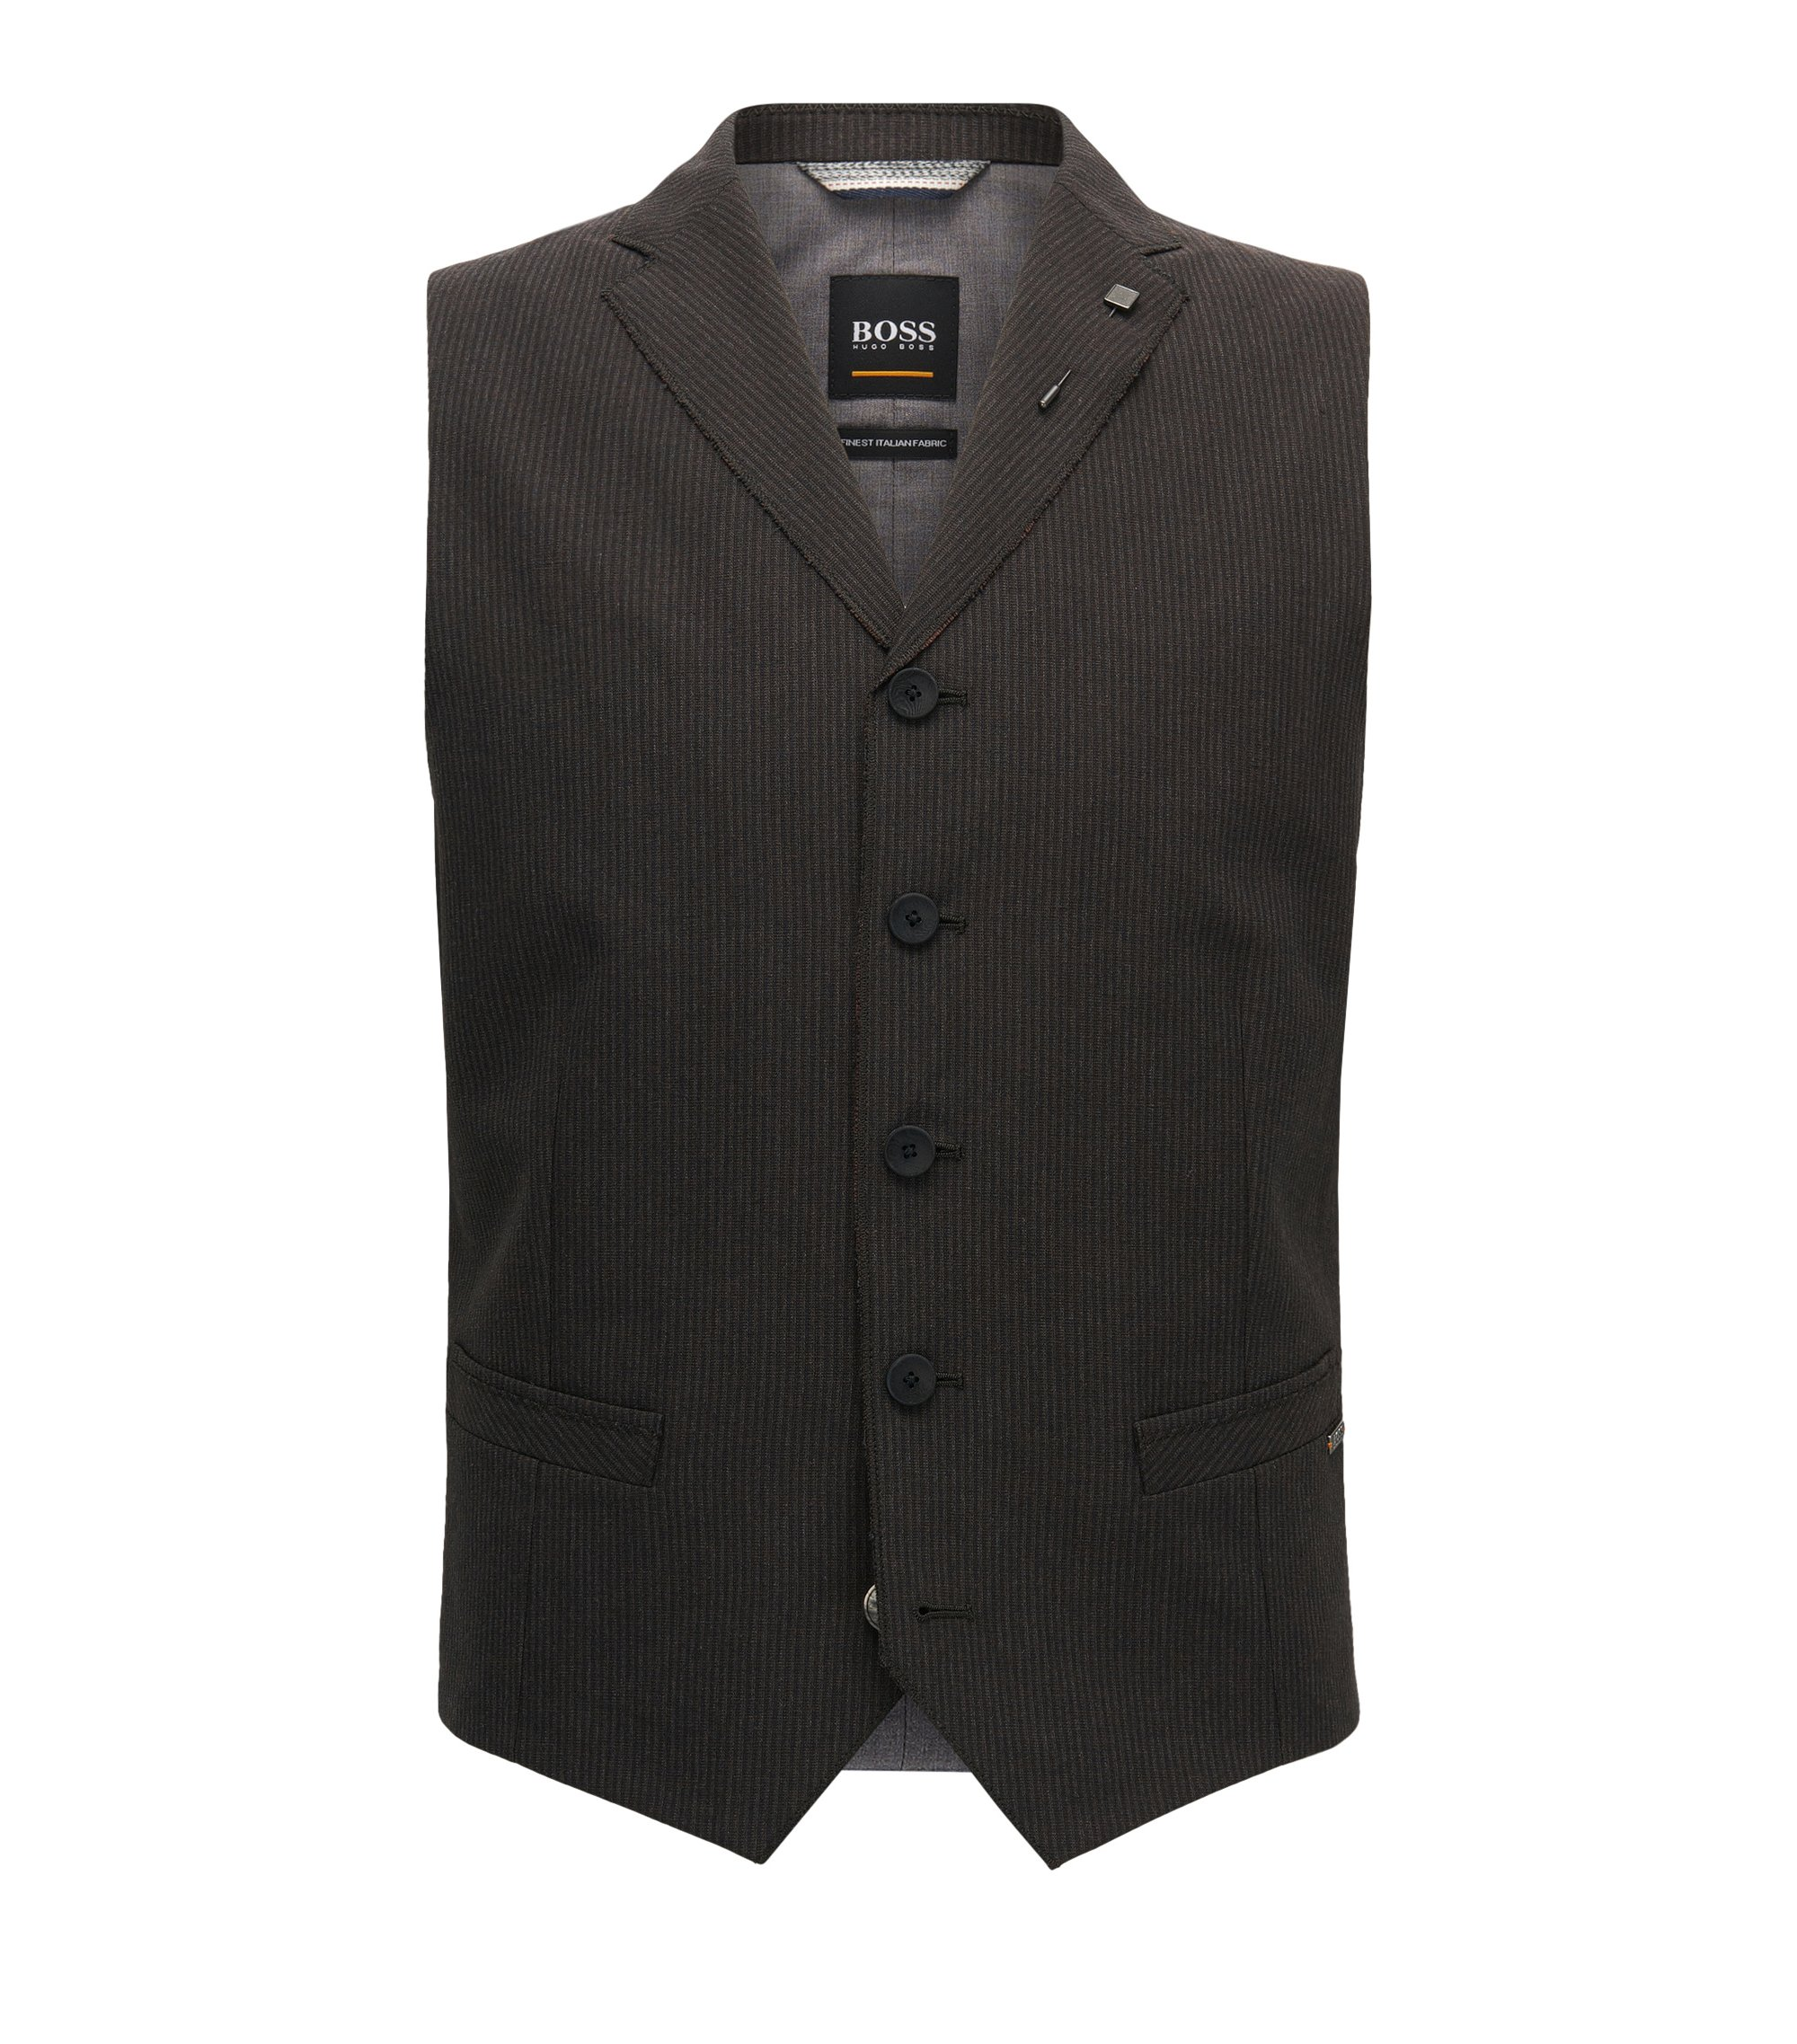 Pinstriped Italian Fabric Waistcoat | Bace BS, Dark Brown